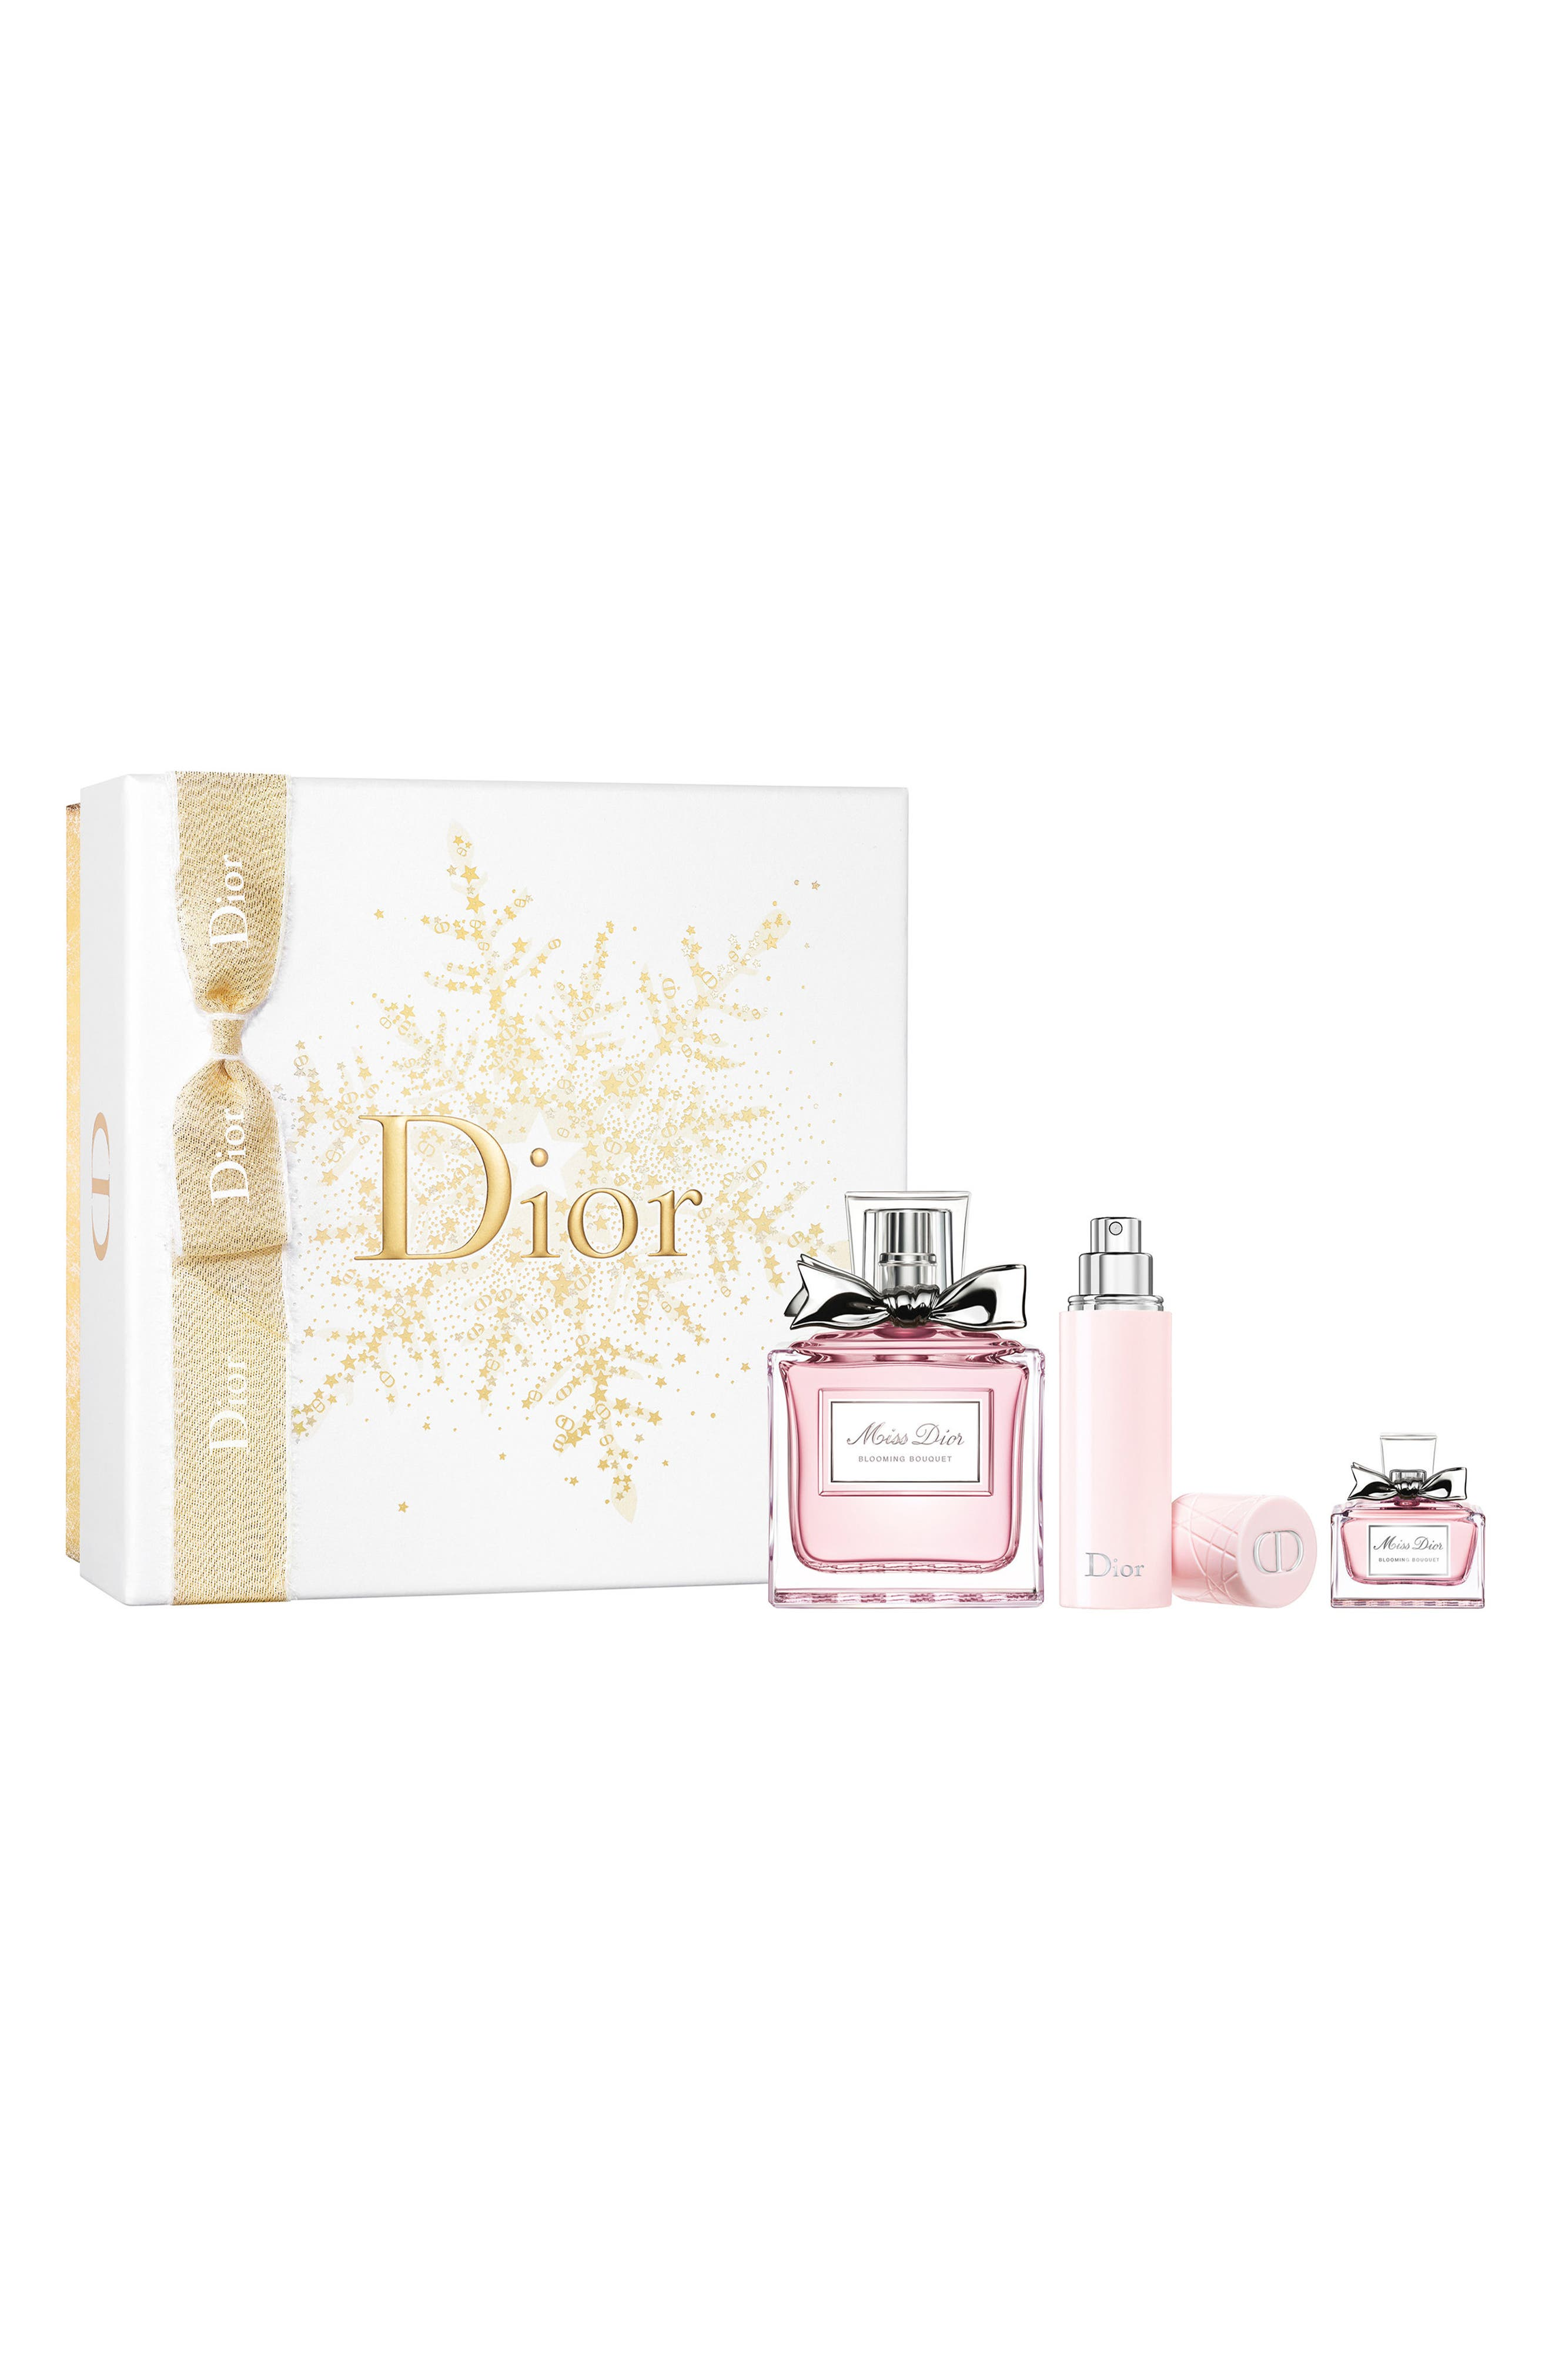 Alternate Image 1 Selected - Dior Miss Dior Blooming Bouquet Eau de Toilette Signature Set